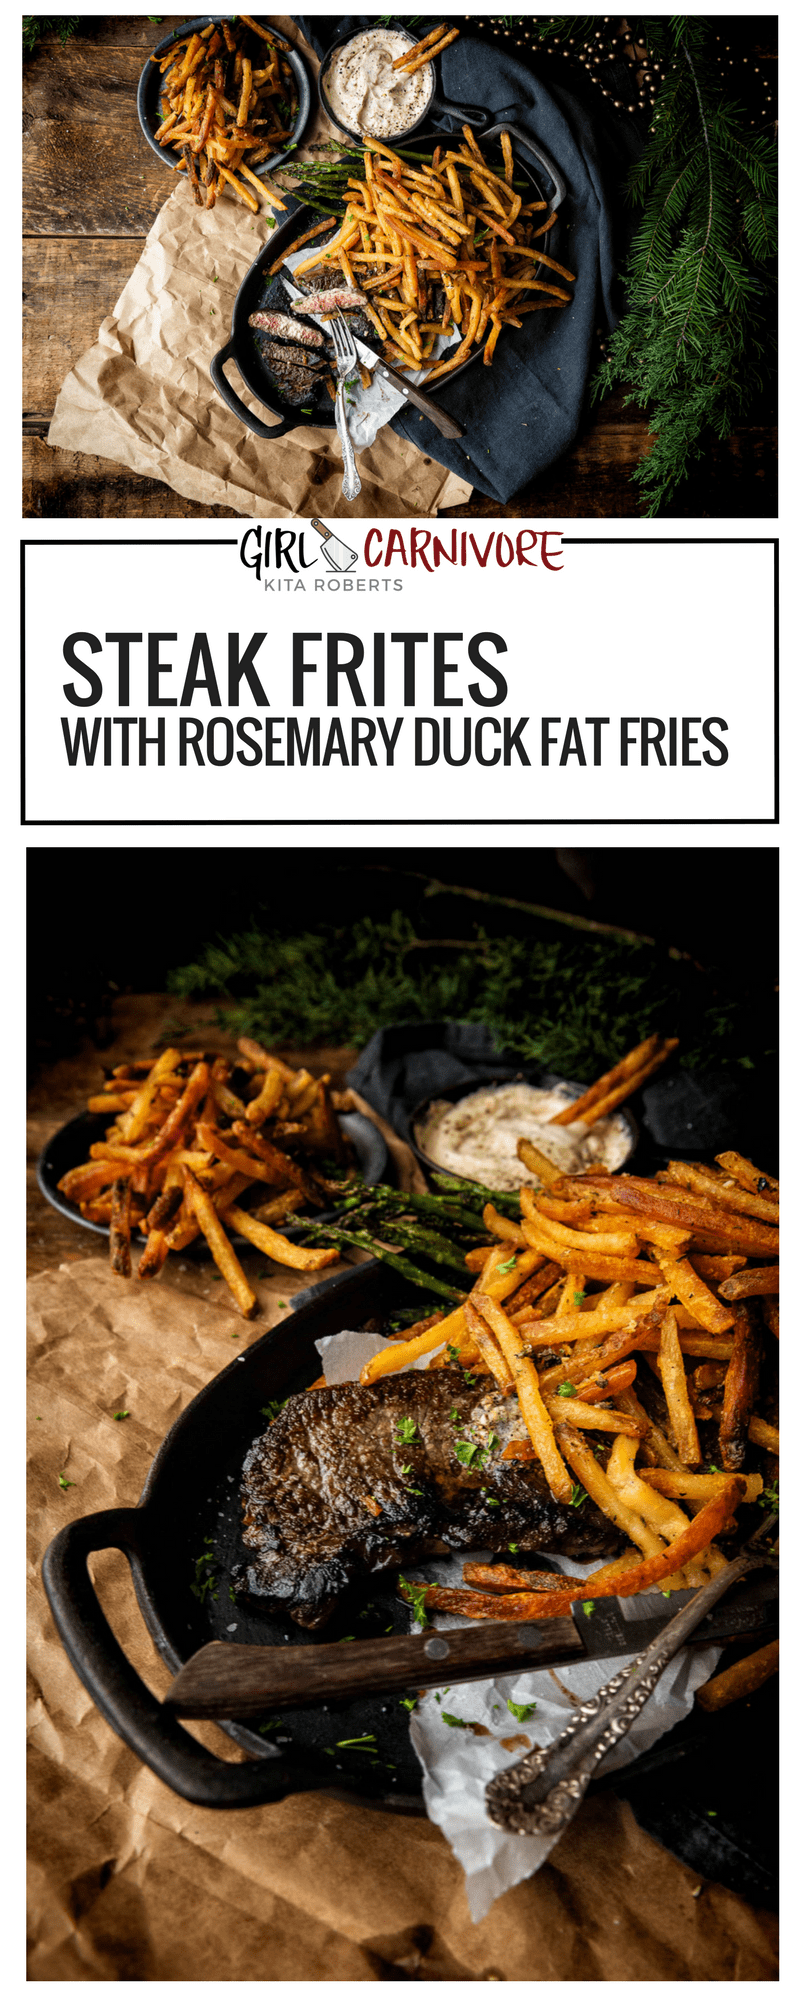 Steak Frites with Rosemary Duck Fat Fries Recipe on GirlCarnivore.com